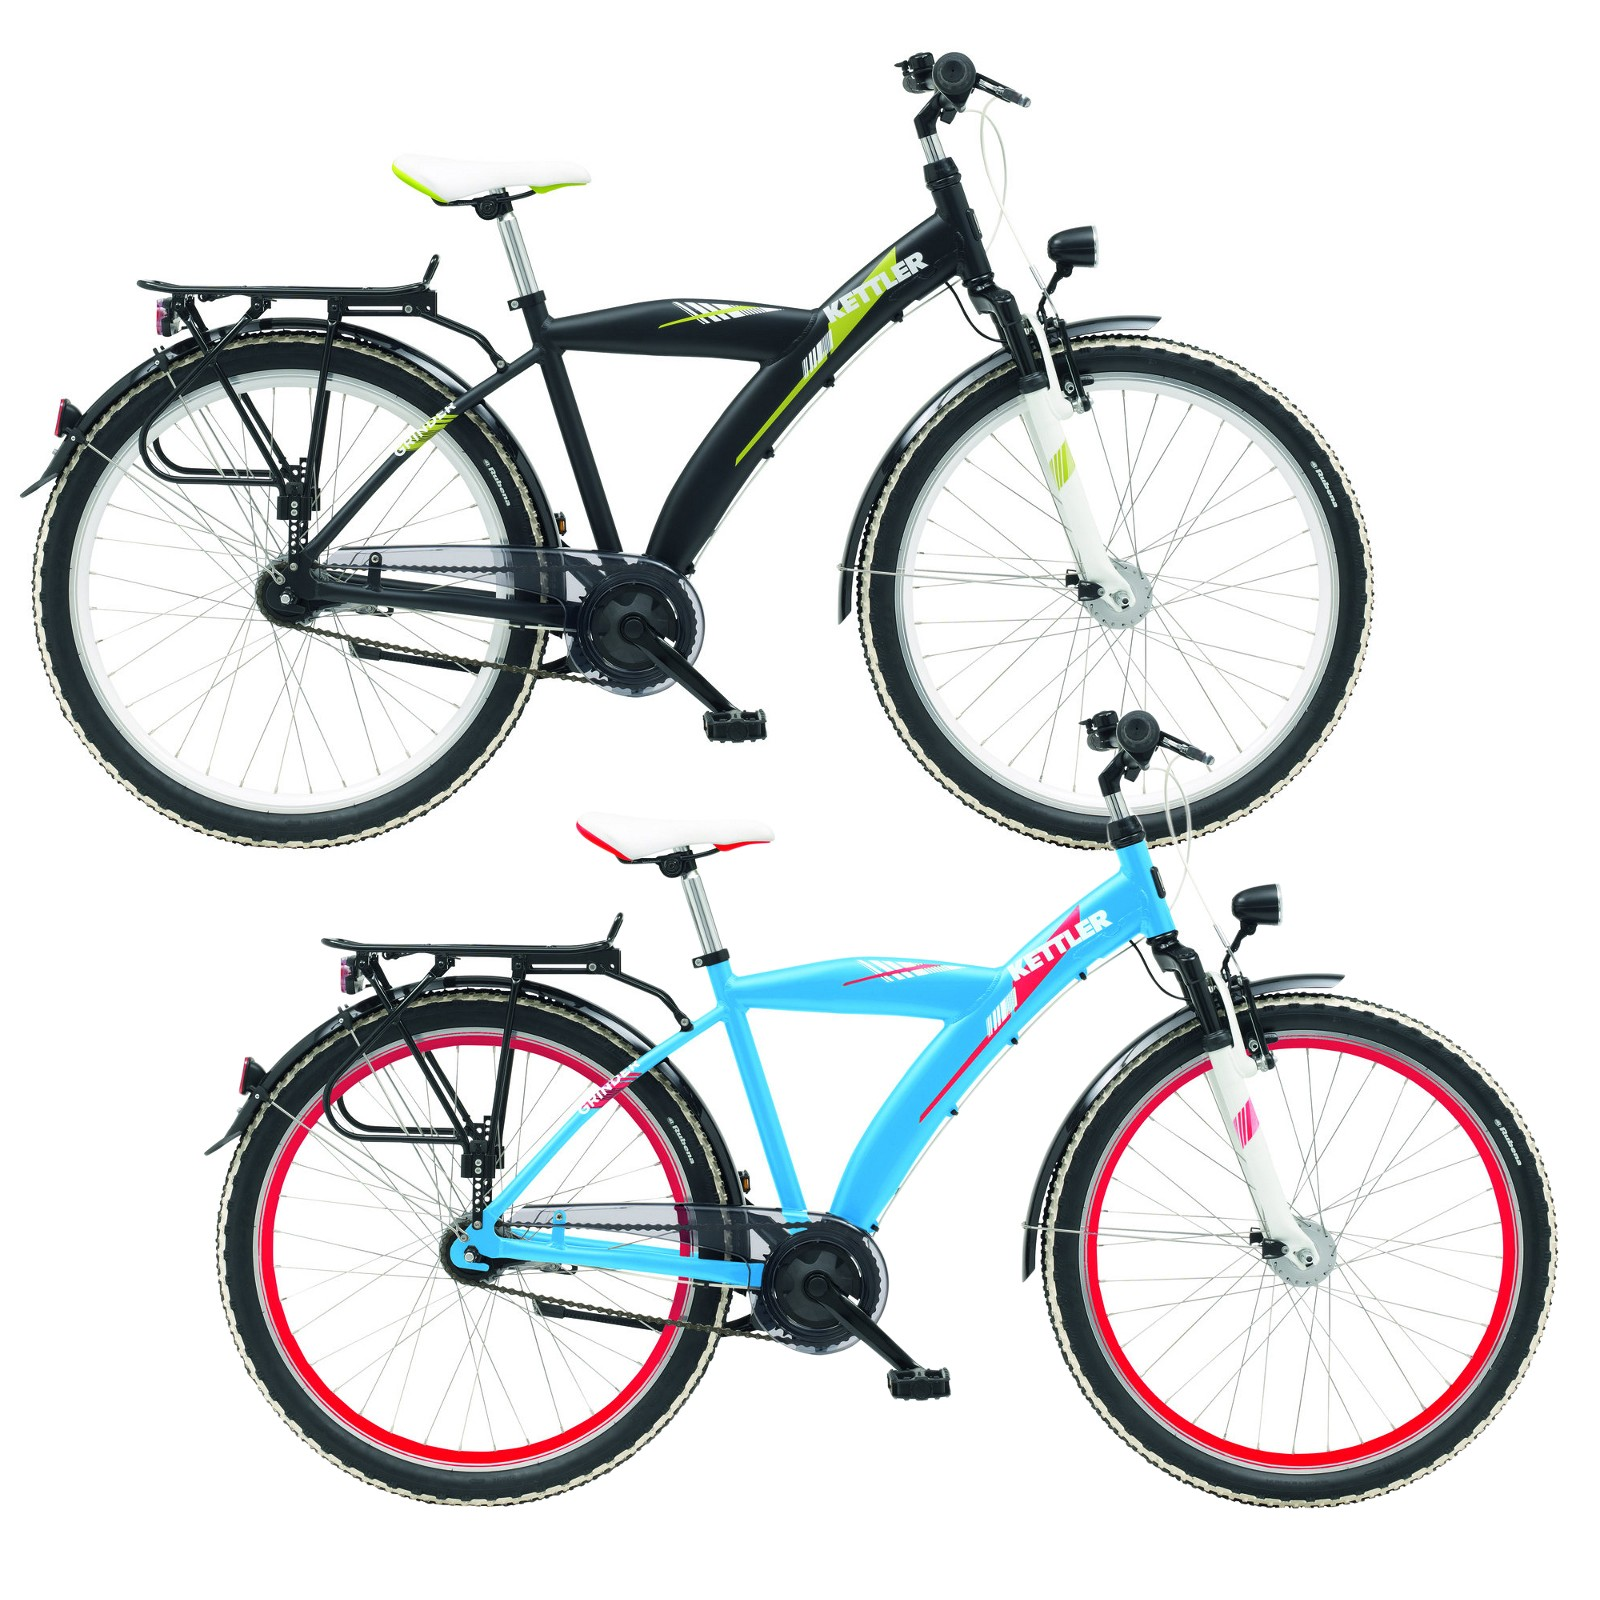 kettler kinder fahrrad grinder 26 zoll g nstig kaufen. Black Bedroom Furniture Sets. Home Design Ideas